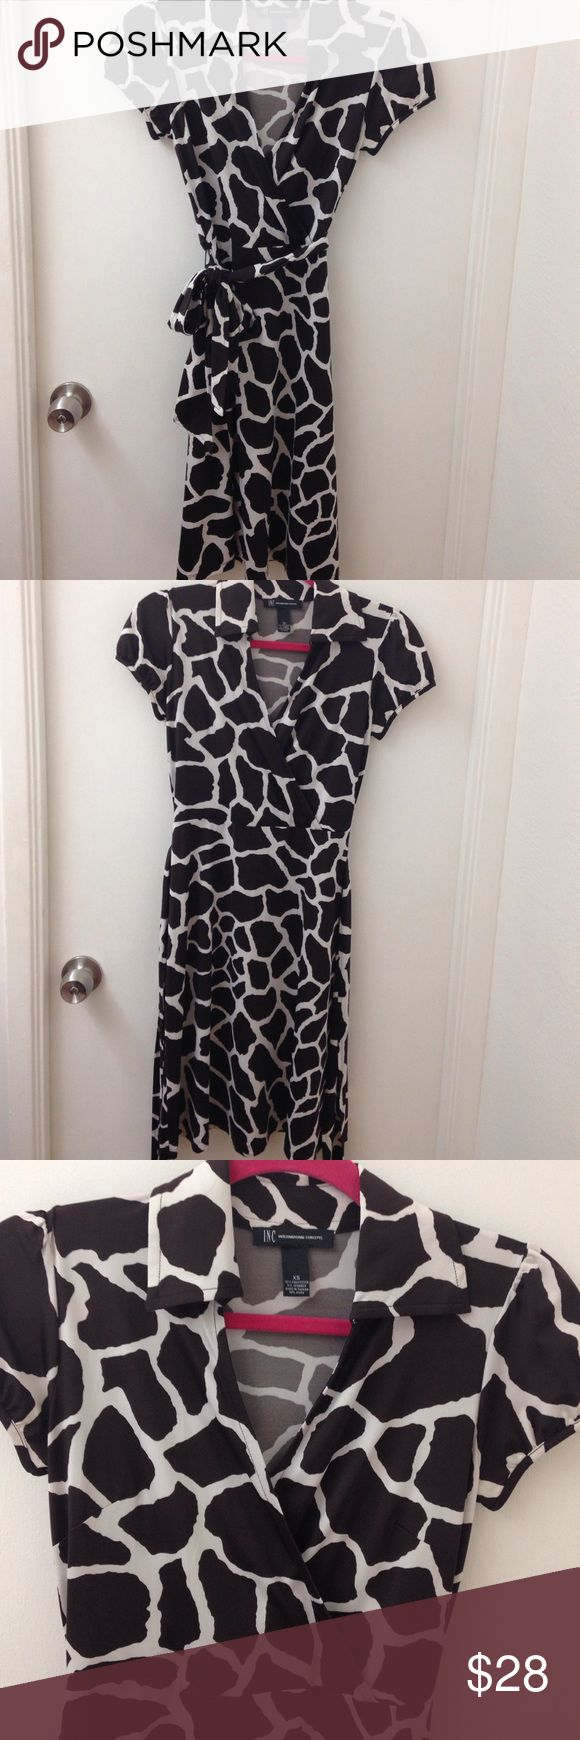 INC safari DRESS The most comfortable dress ever! Excellent like new condition! Great for work and travel! No need to iron. INC International Concepts Dresses